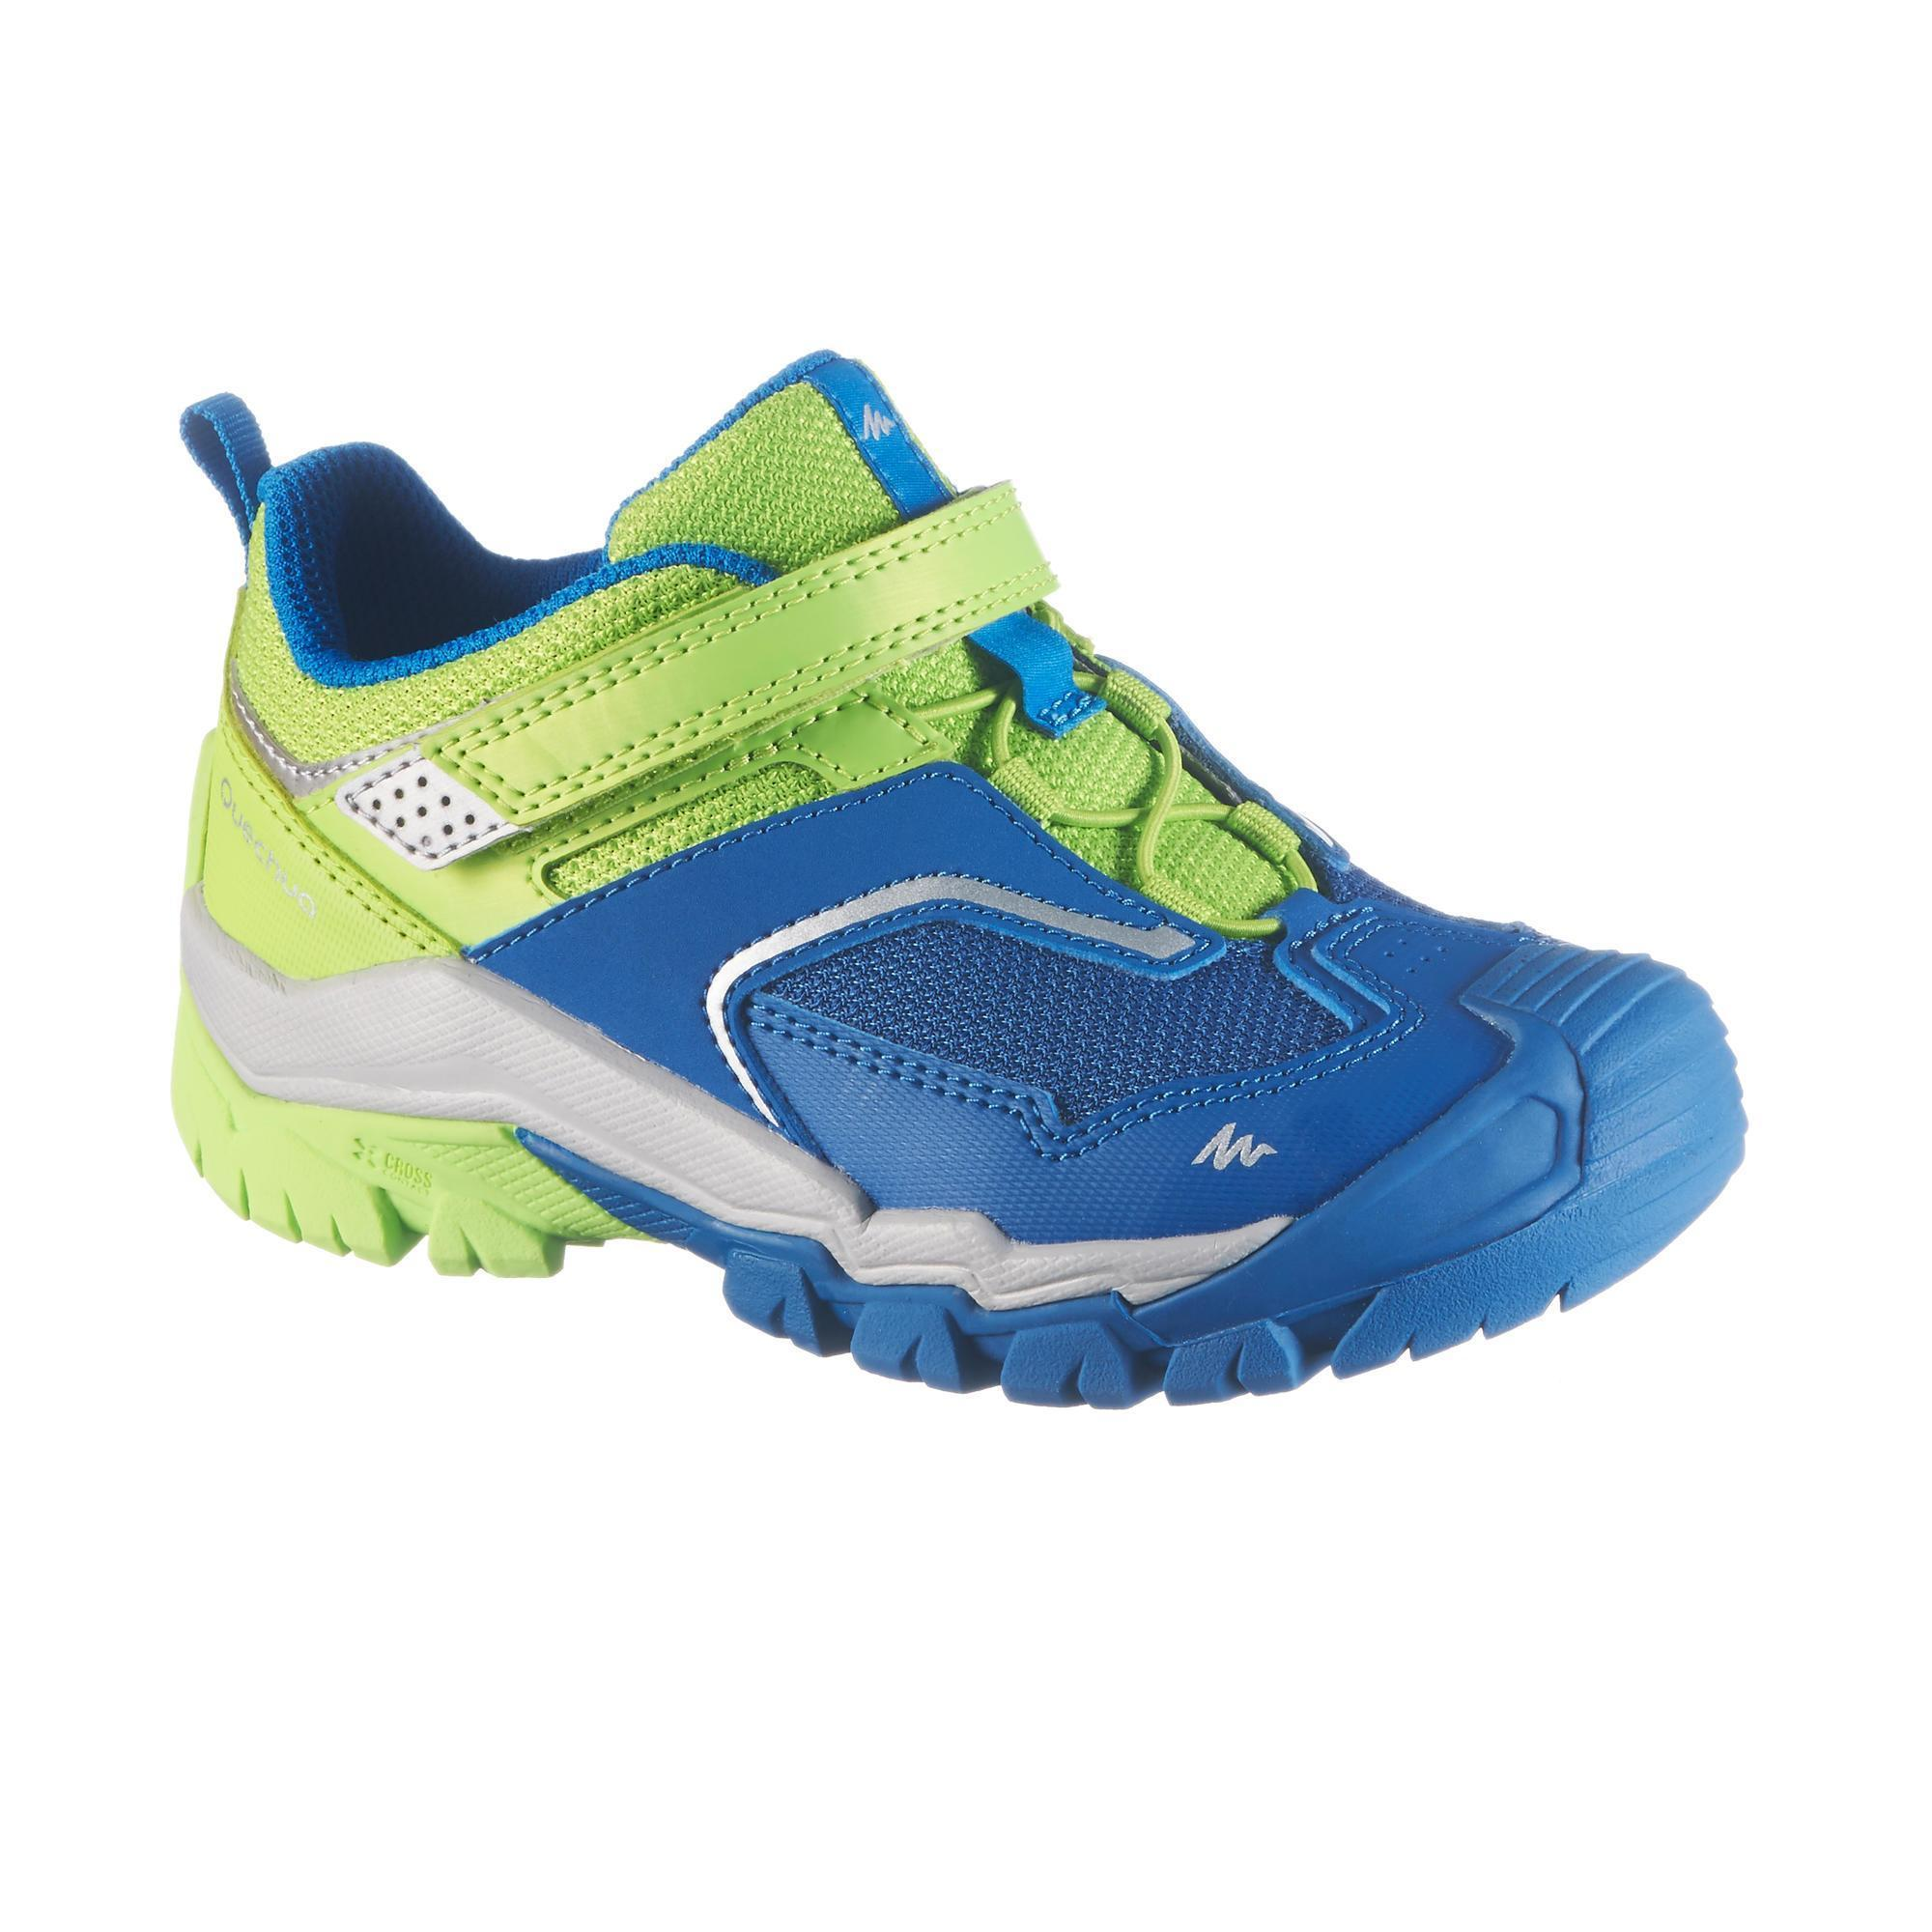 Crossrock Kid Girls Mountain Hiking Shoes Blue Fluo